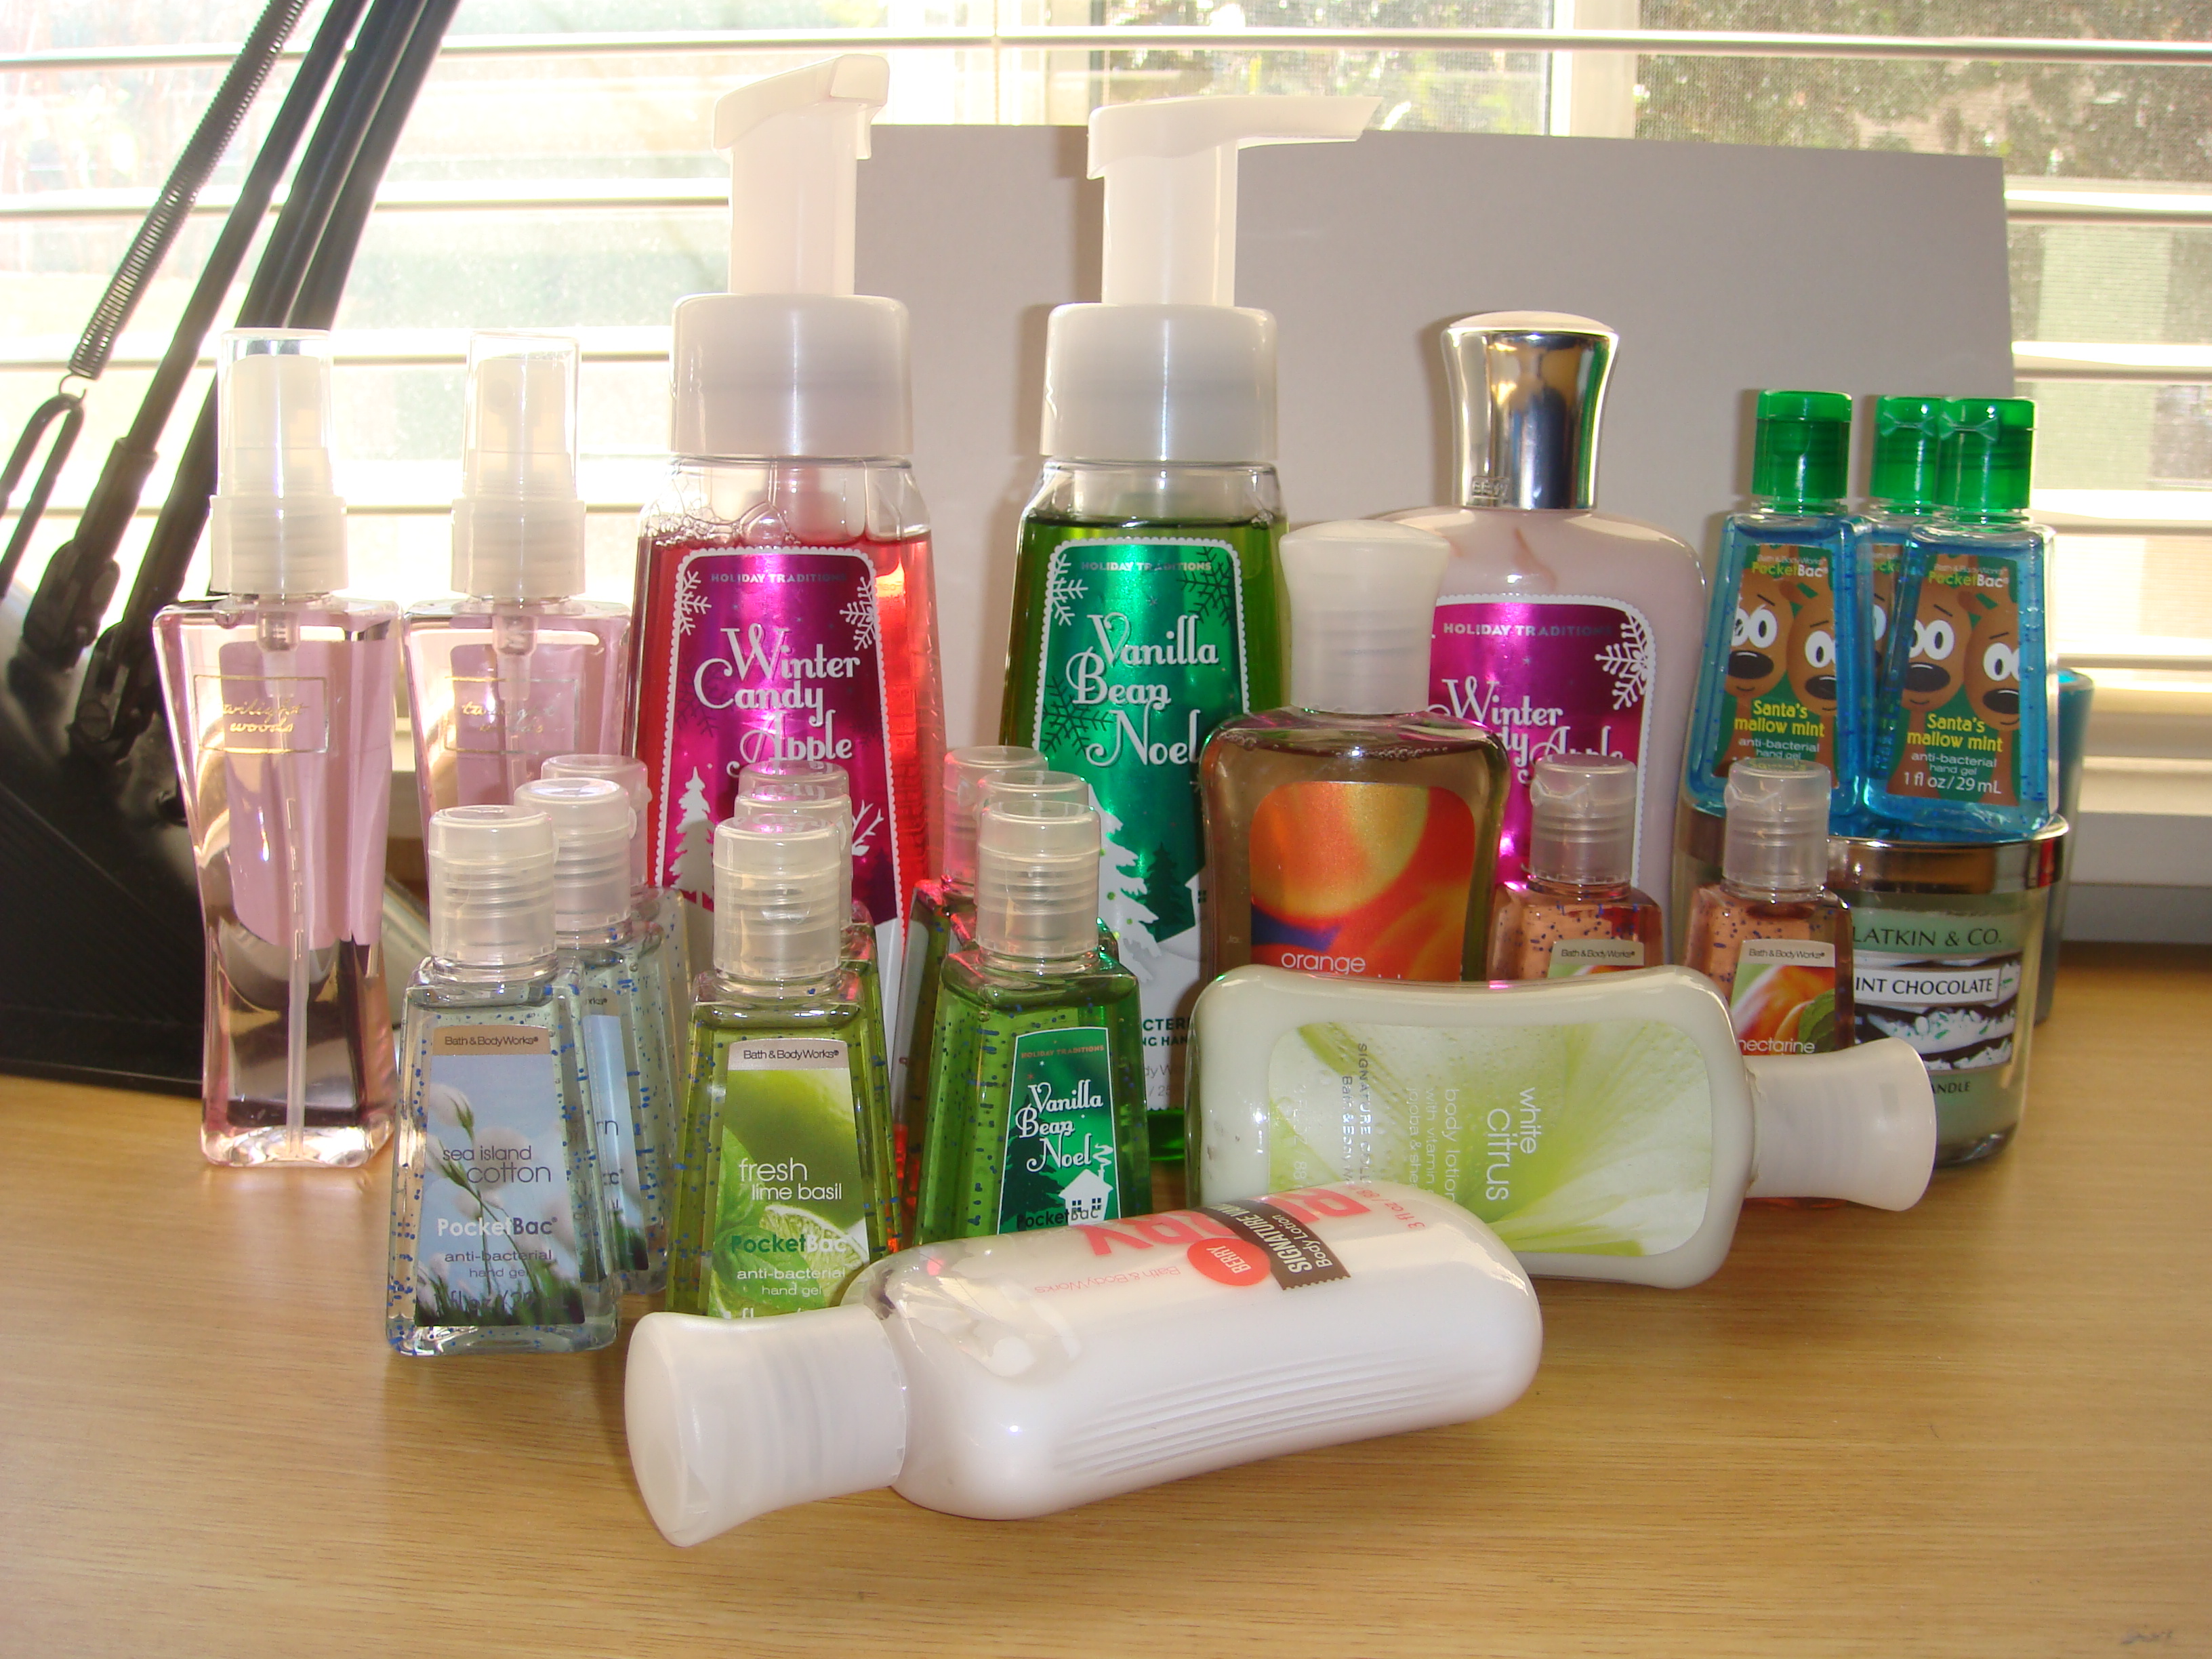 Bath Amp Body Works Semi Annual Haul Jan 2011 Sophie S Dish